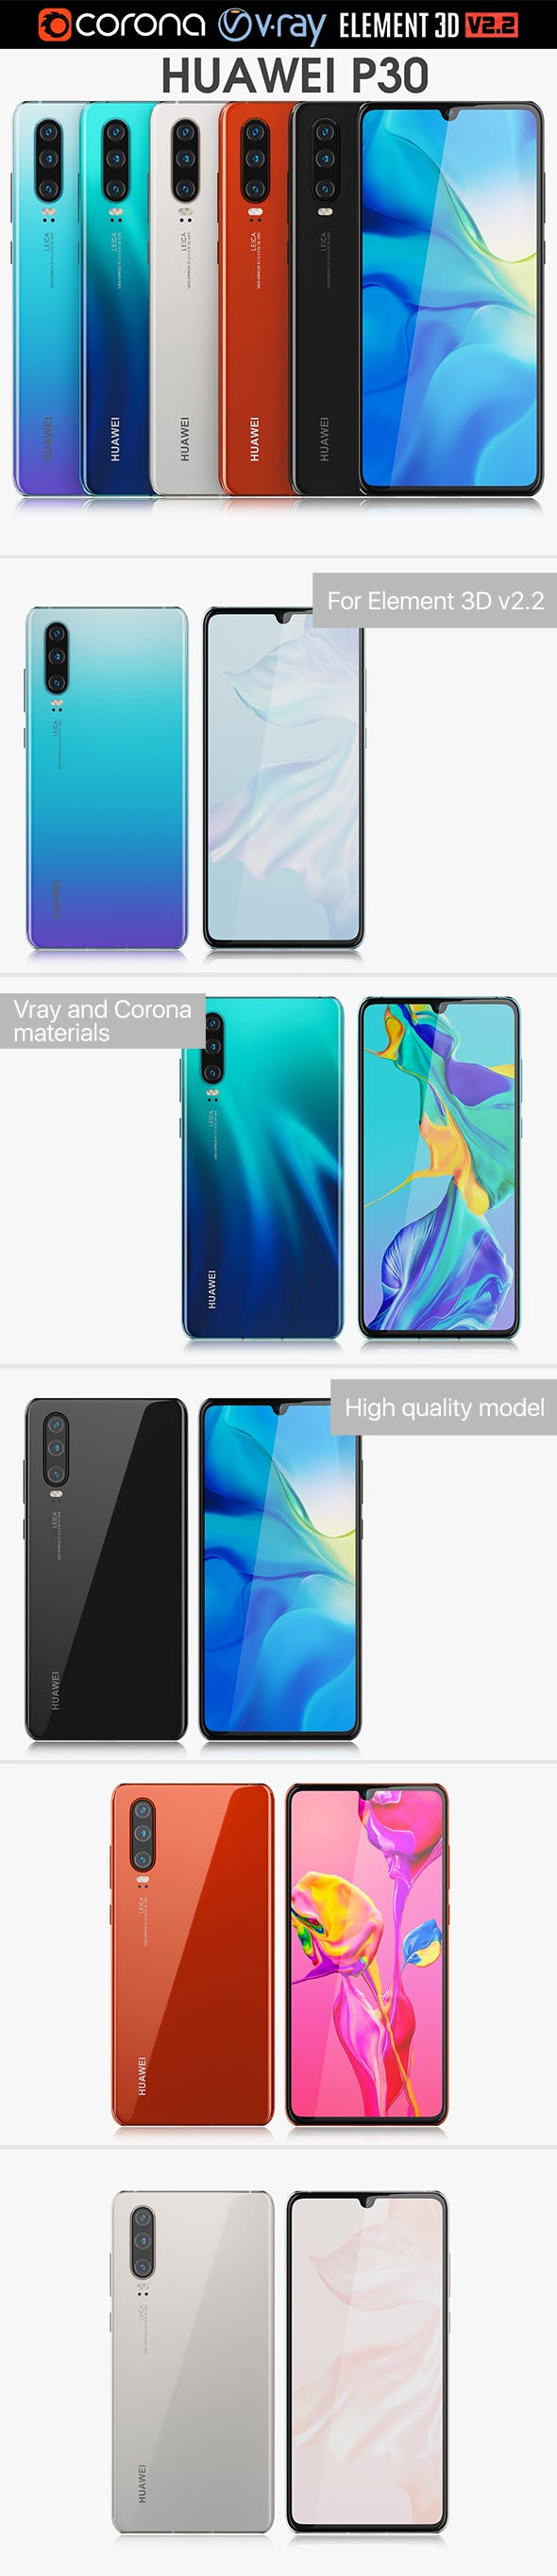 Huawei P30 ALL Colors - 3DOcean Item for Sale